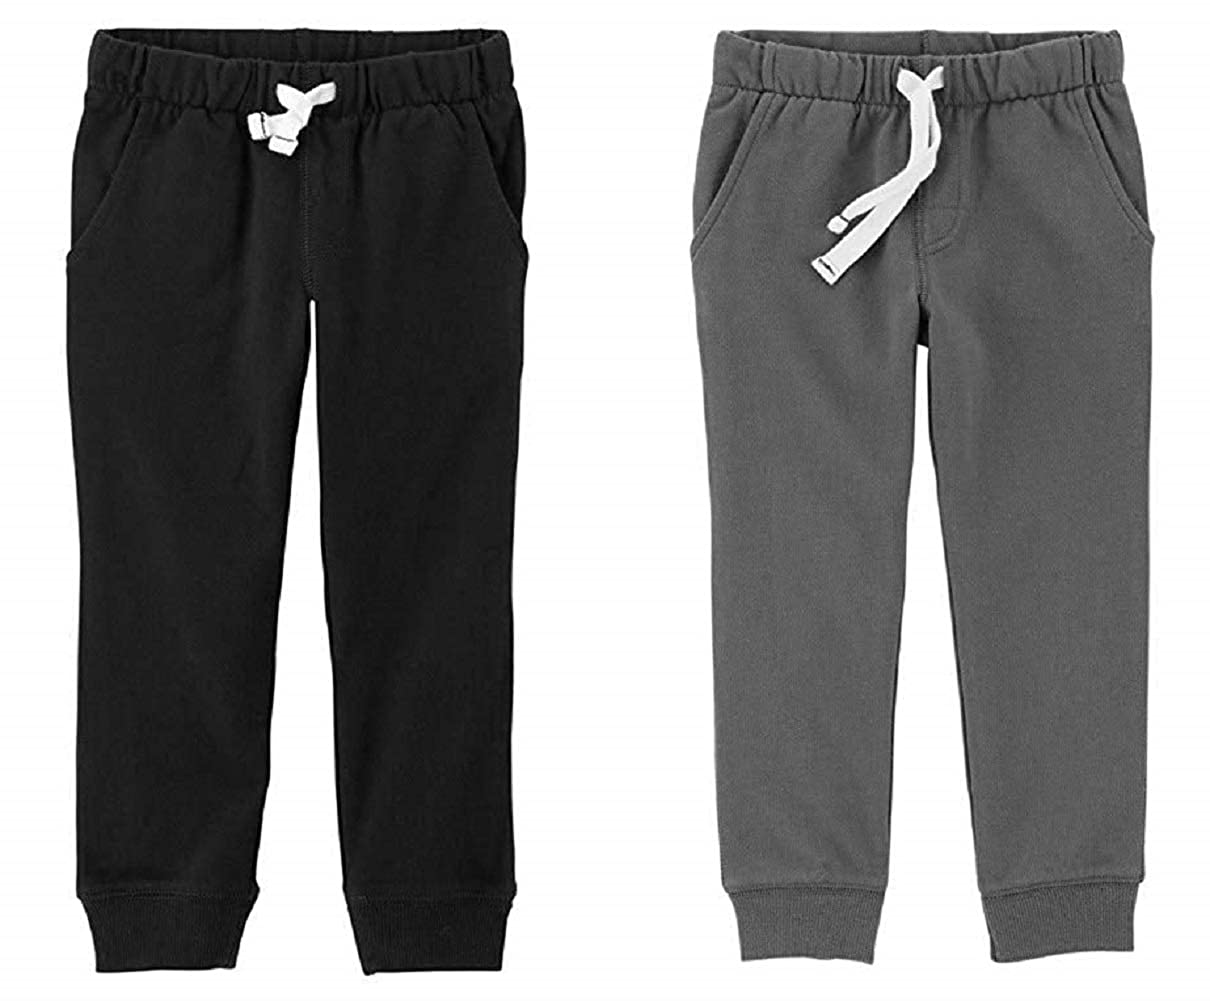 Carters Toddler Boys 2 Pack French Terry Active Joggers//Pants